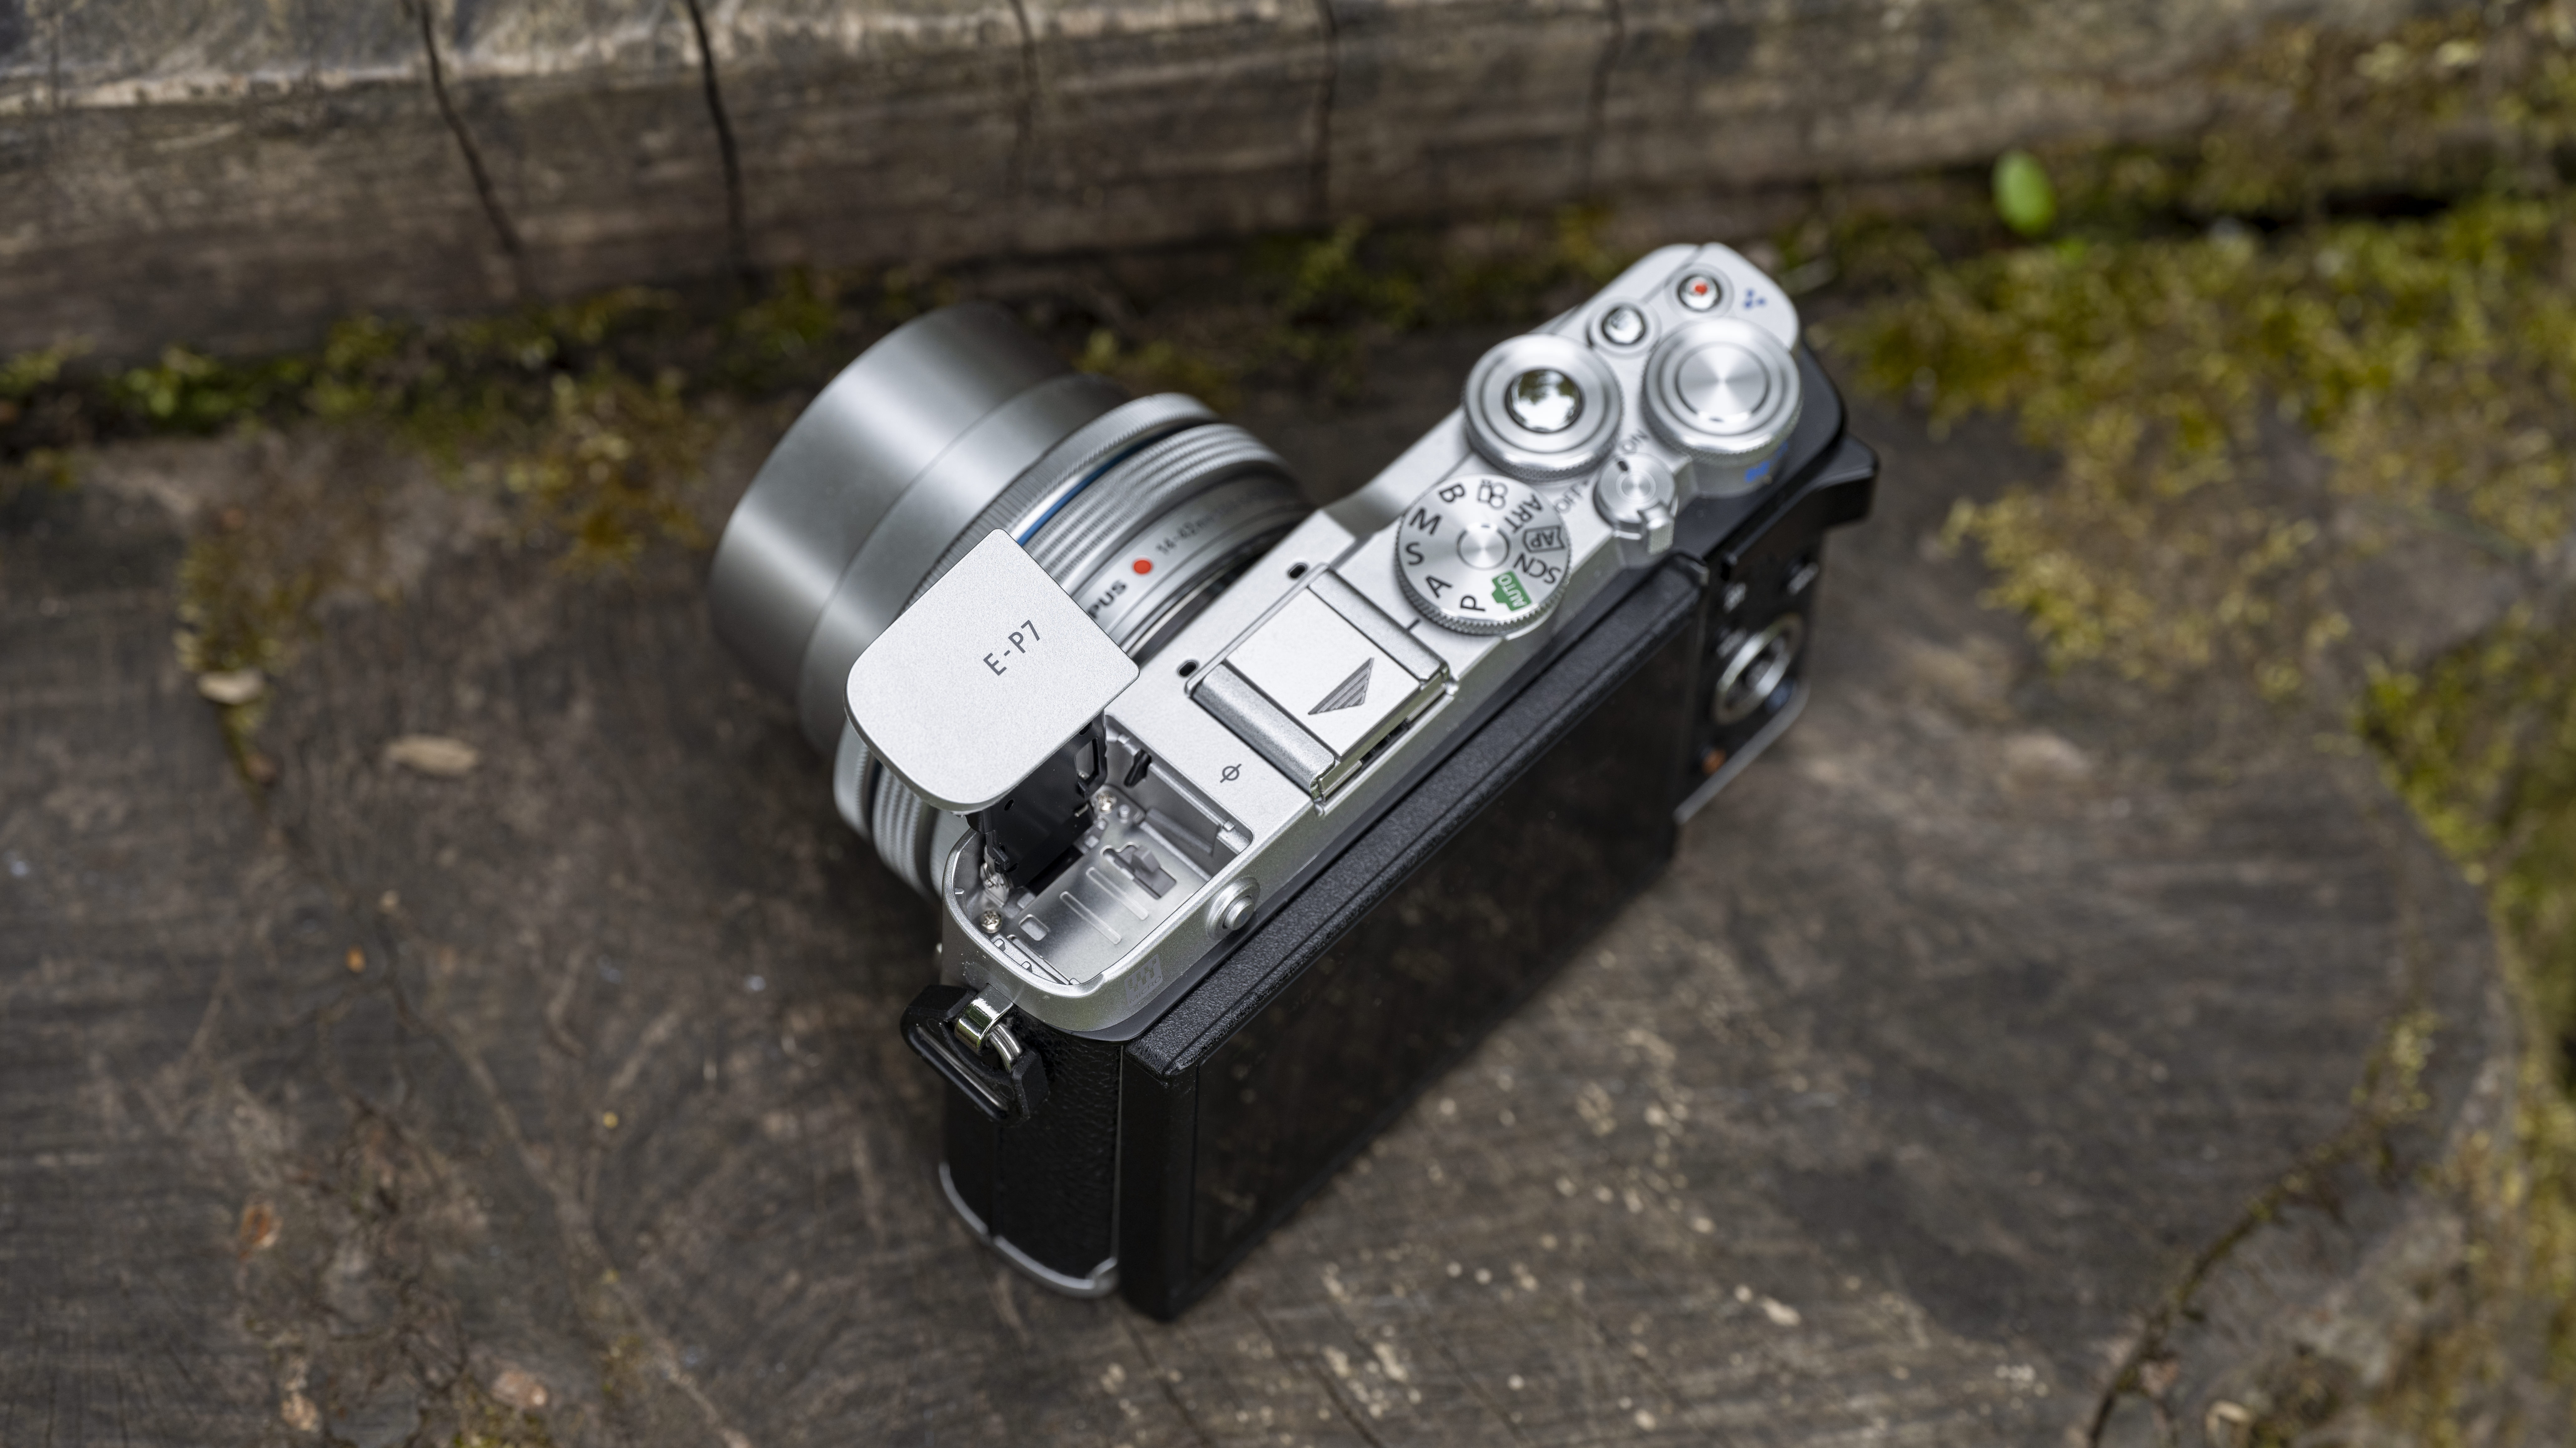 The pop-up flash on the top of the Olympus PEN E-P7